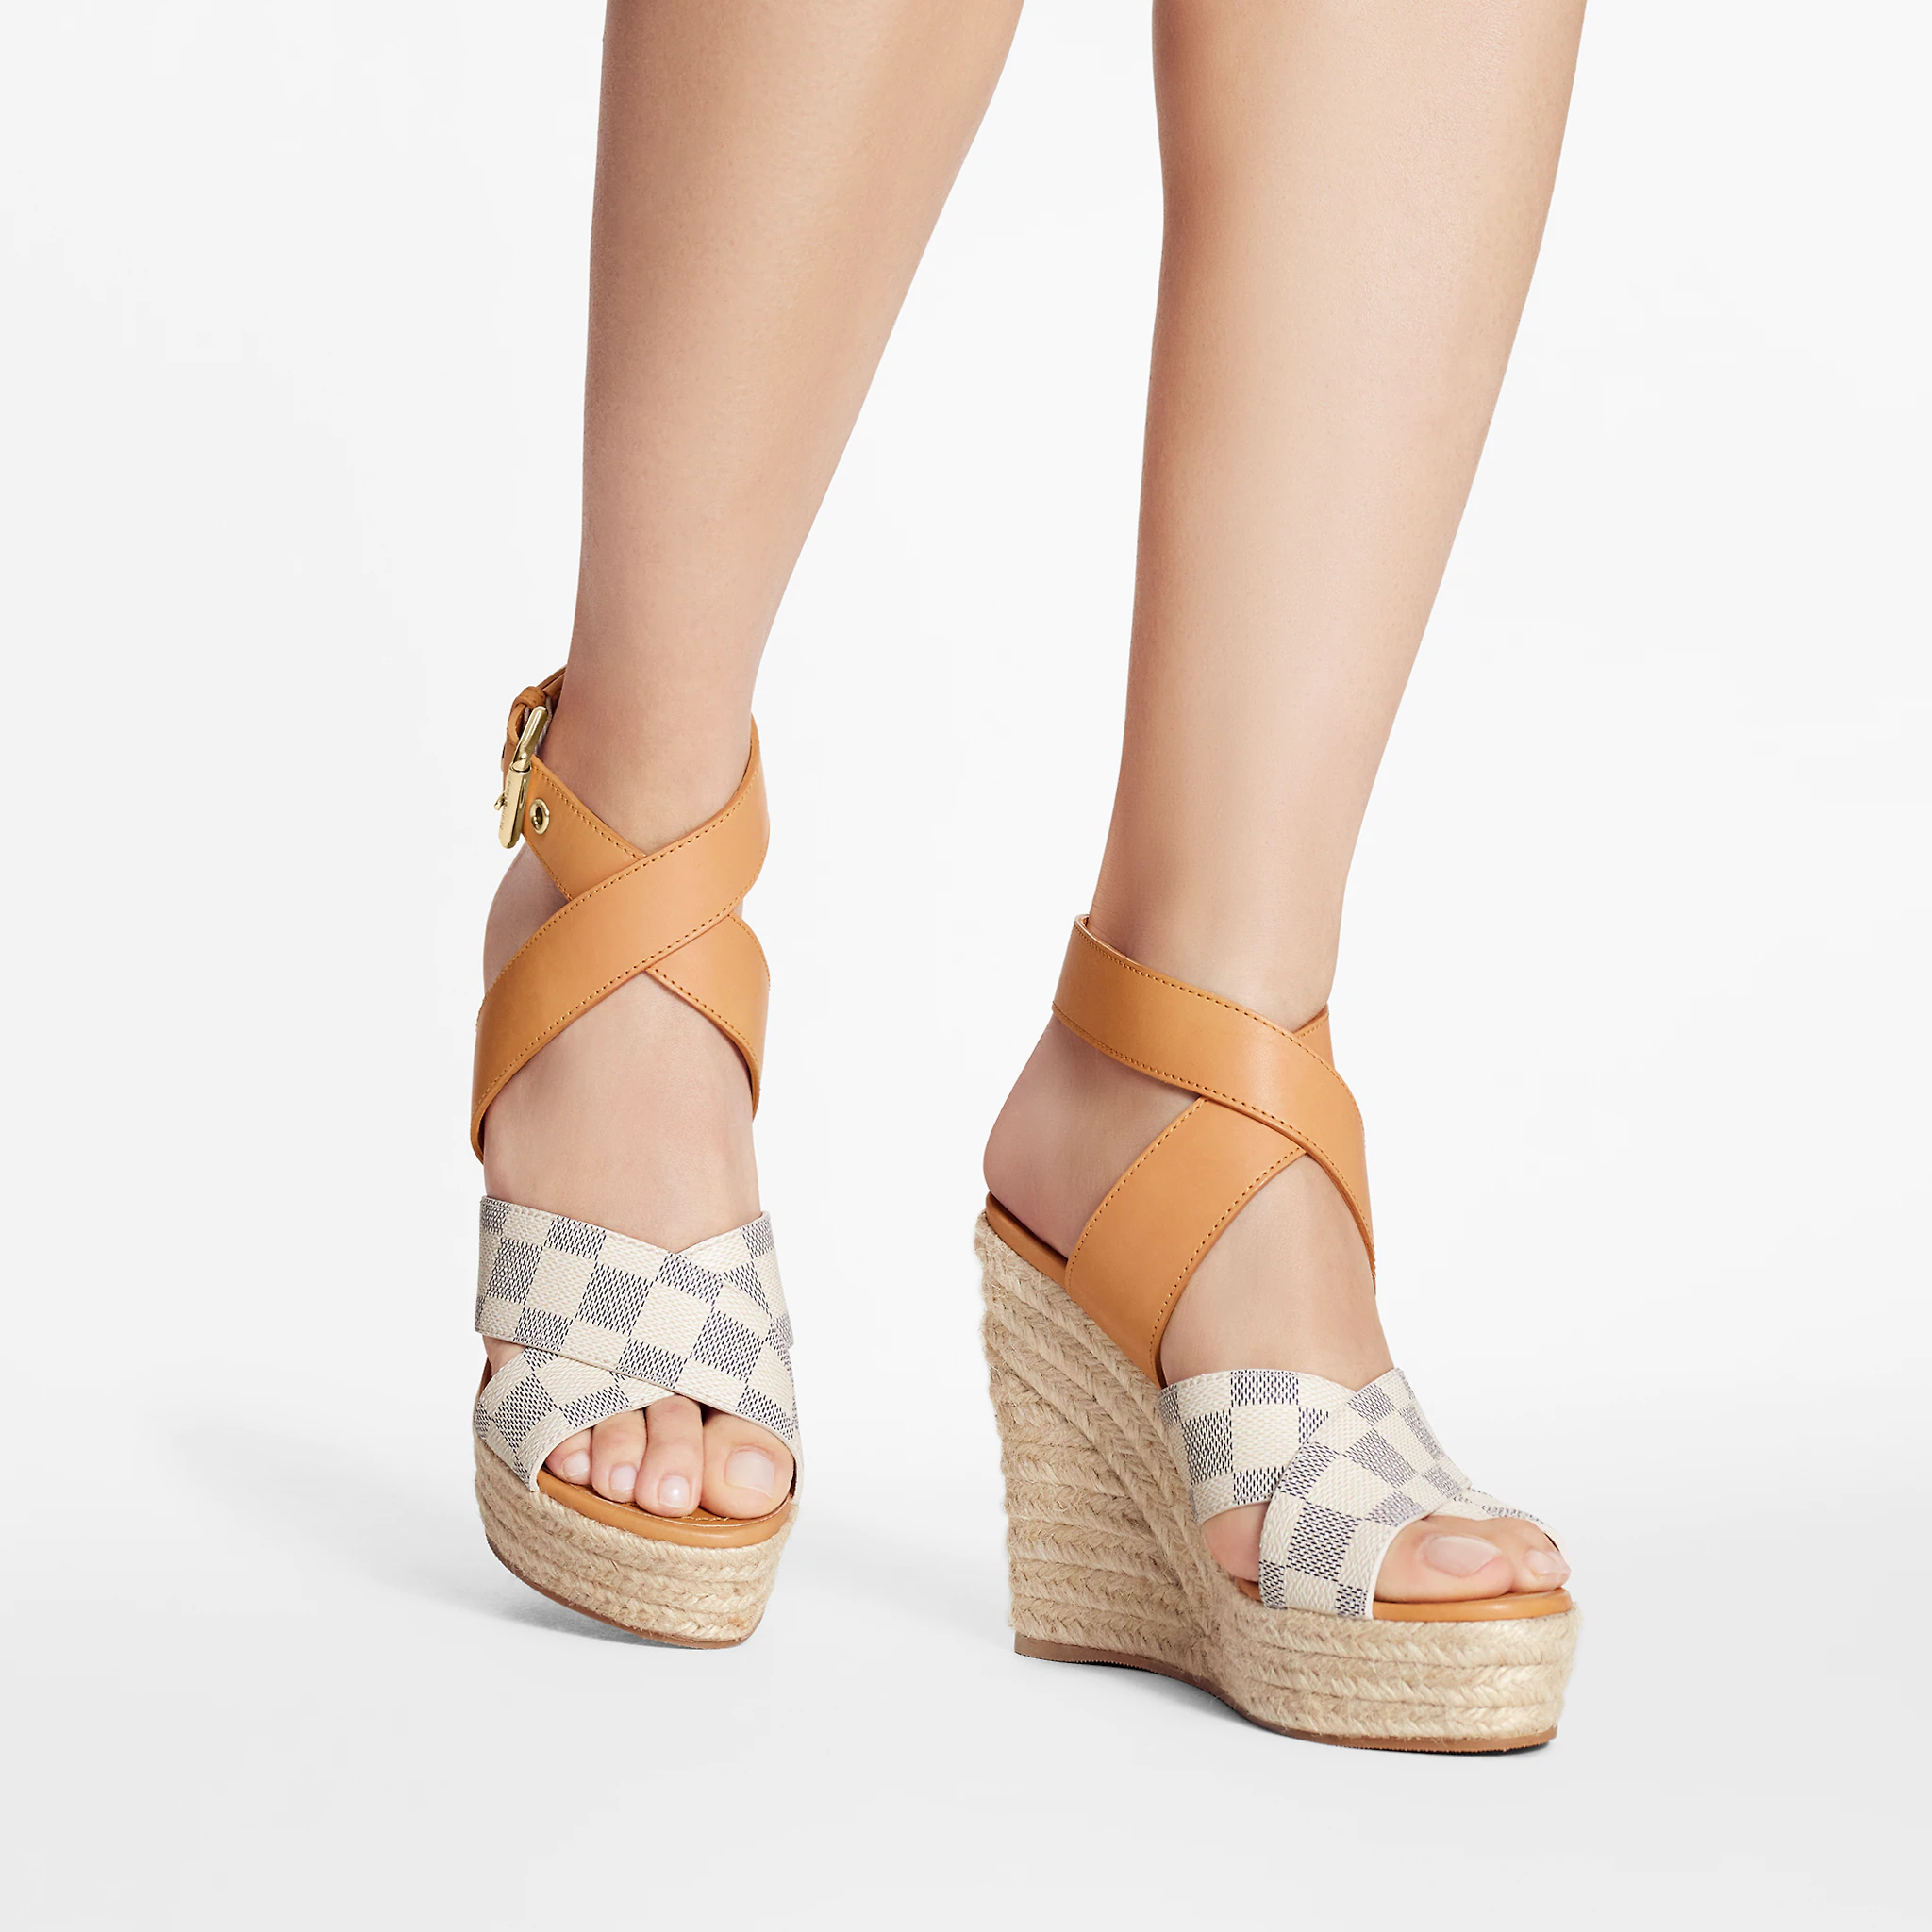 Starboard wedge LV sandals